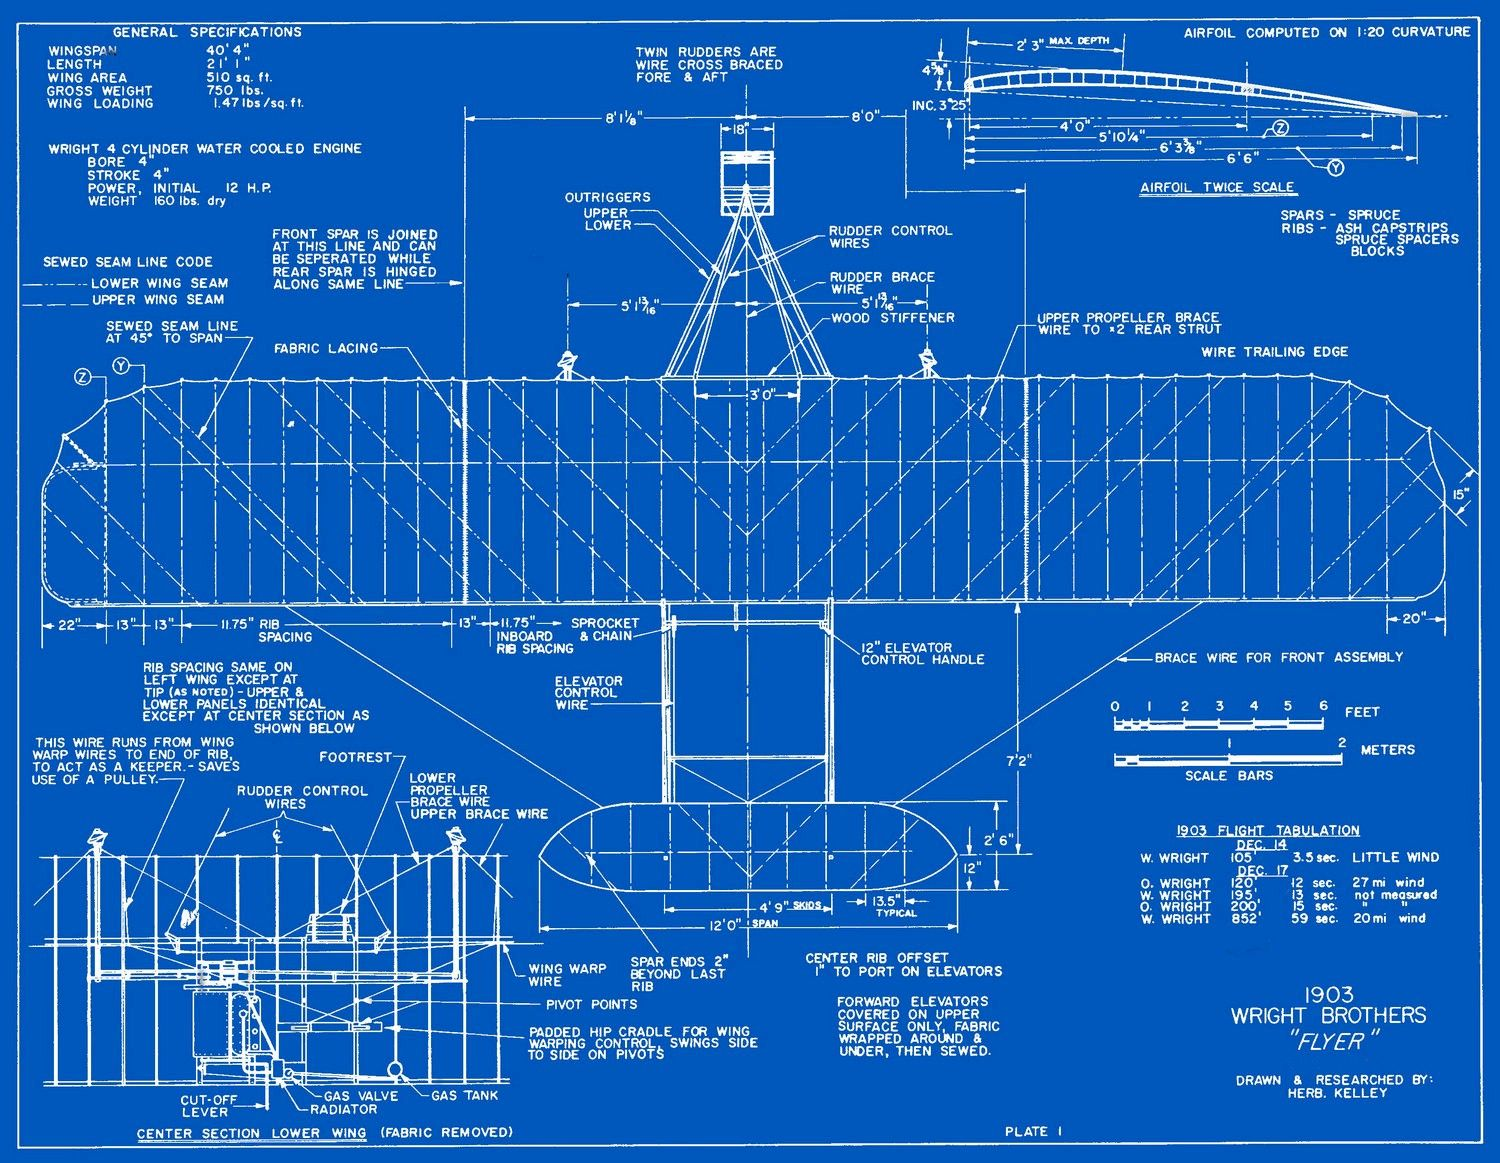 Wright brothers plans google zoeken vliegtuigen doorheen de wright flyer plans and drawings part of the wright brothers aeroplane company a virtual museum of pioneer aviation the invention of the airplane malvernweather